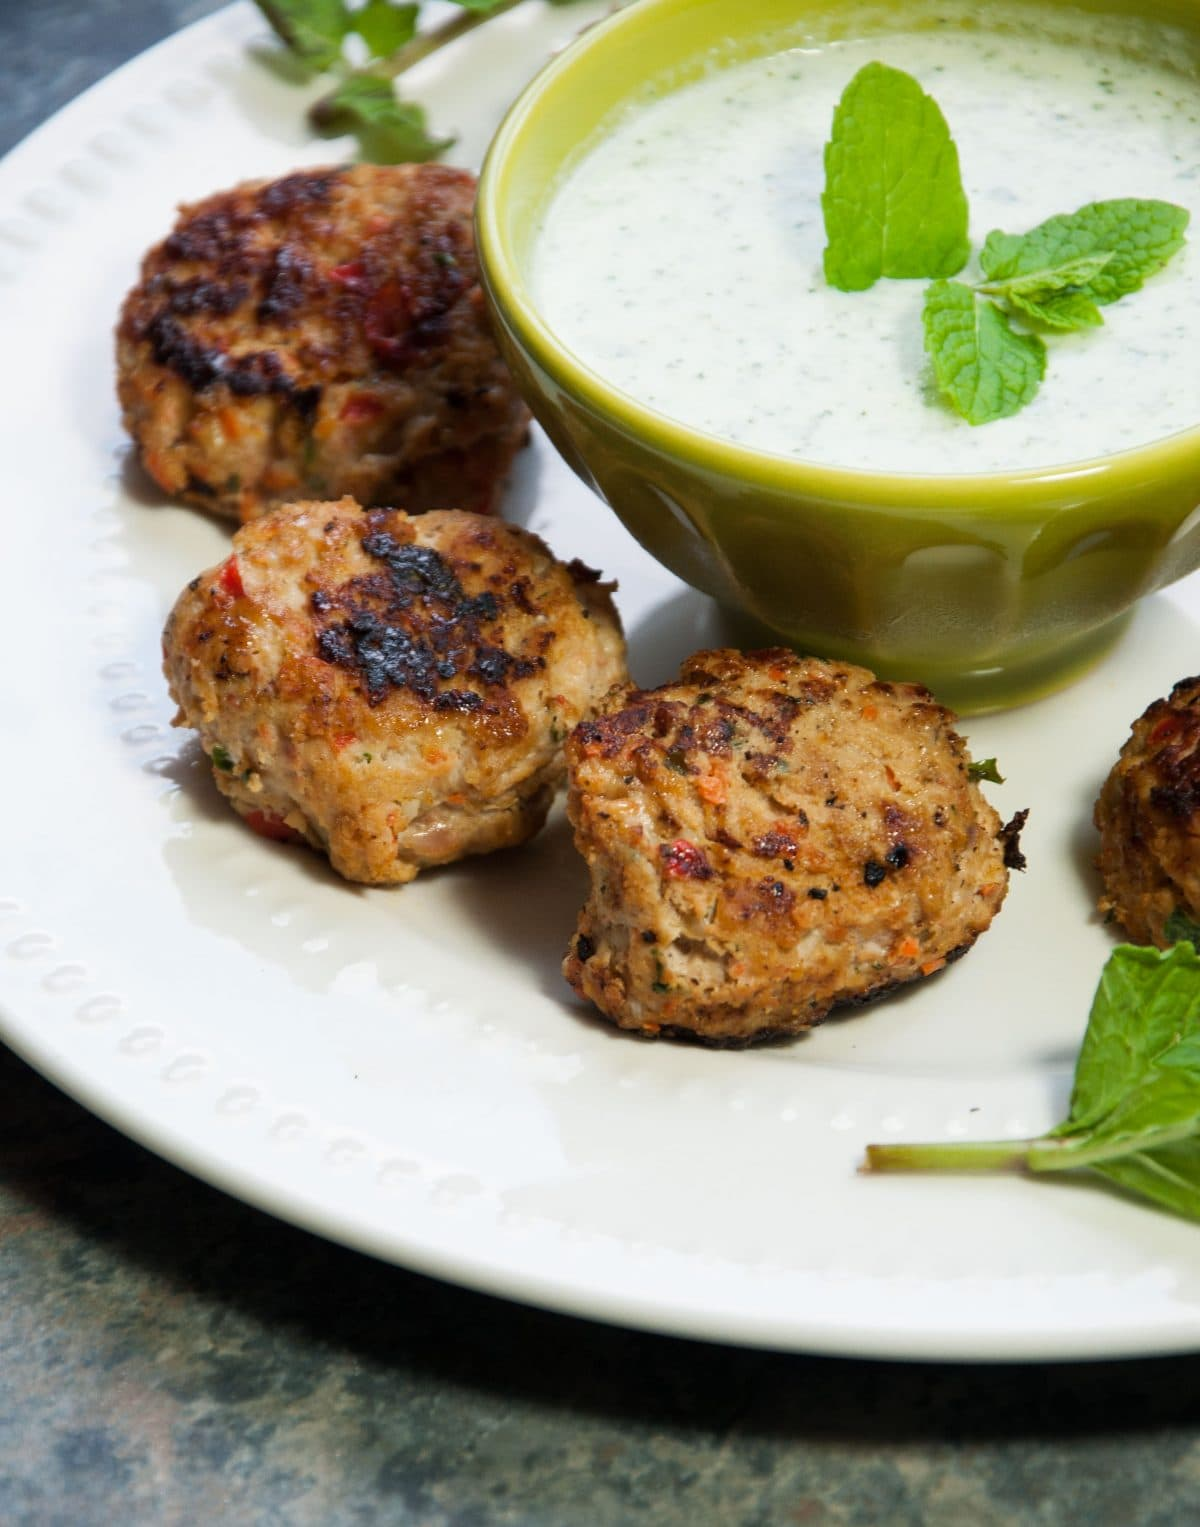 Greek Turkey Meatballs with Yogurt Mint Sauce - Feasting not Fasting